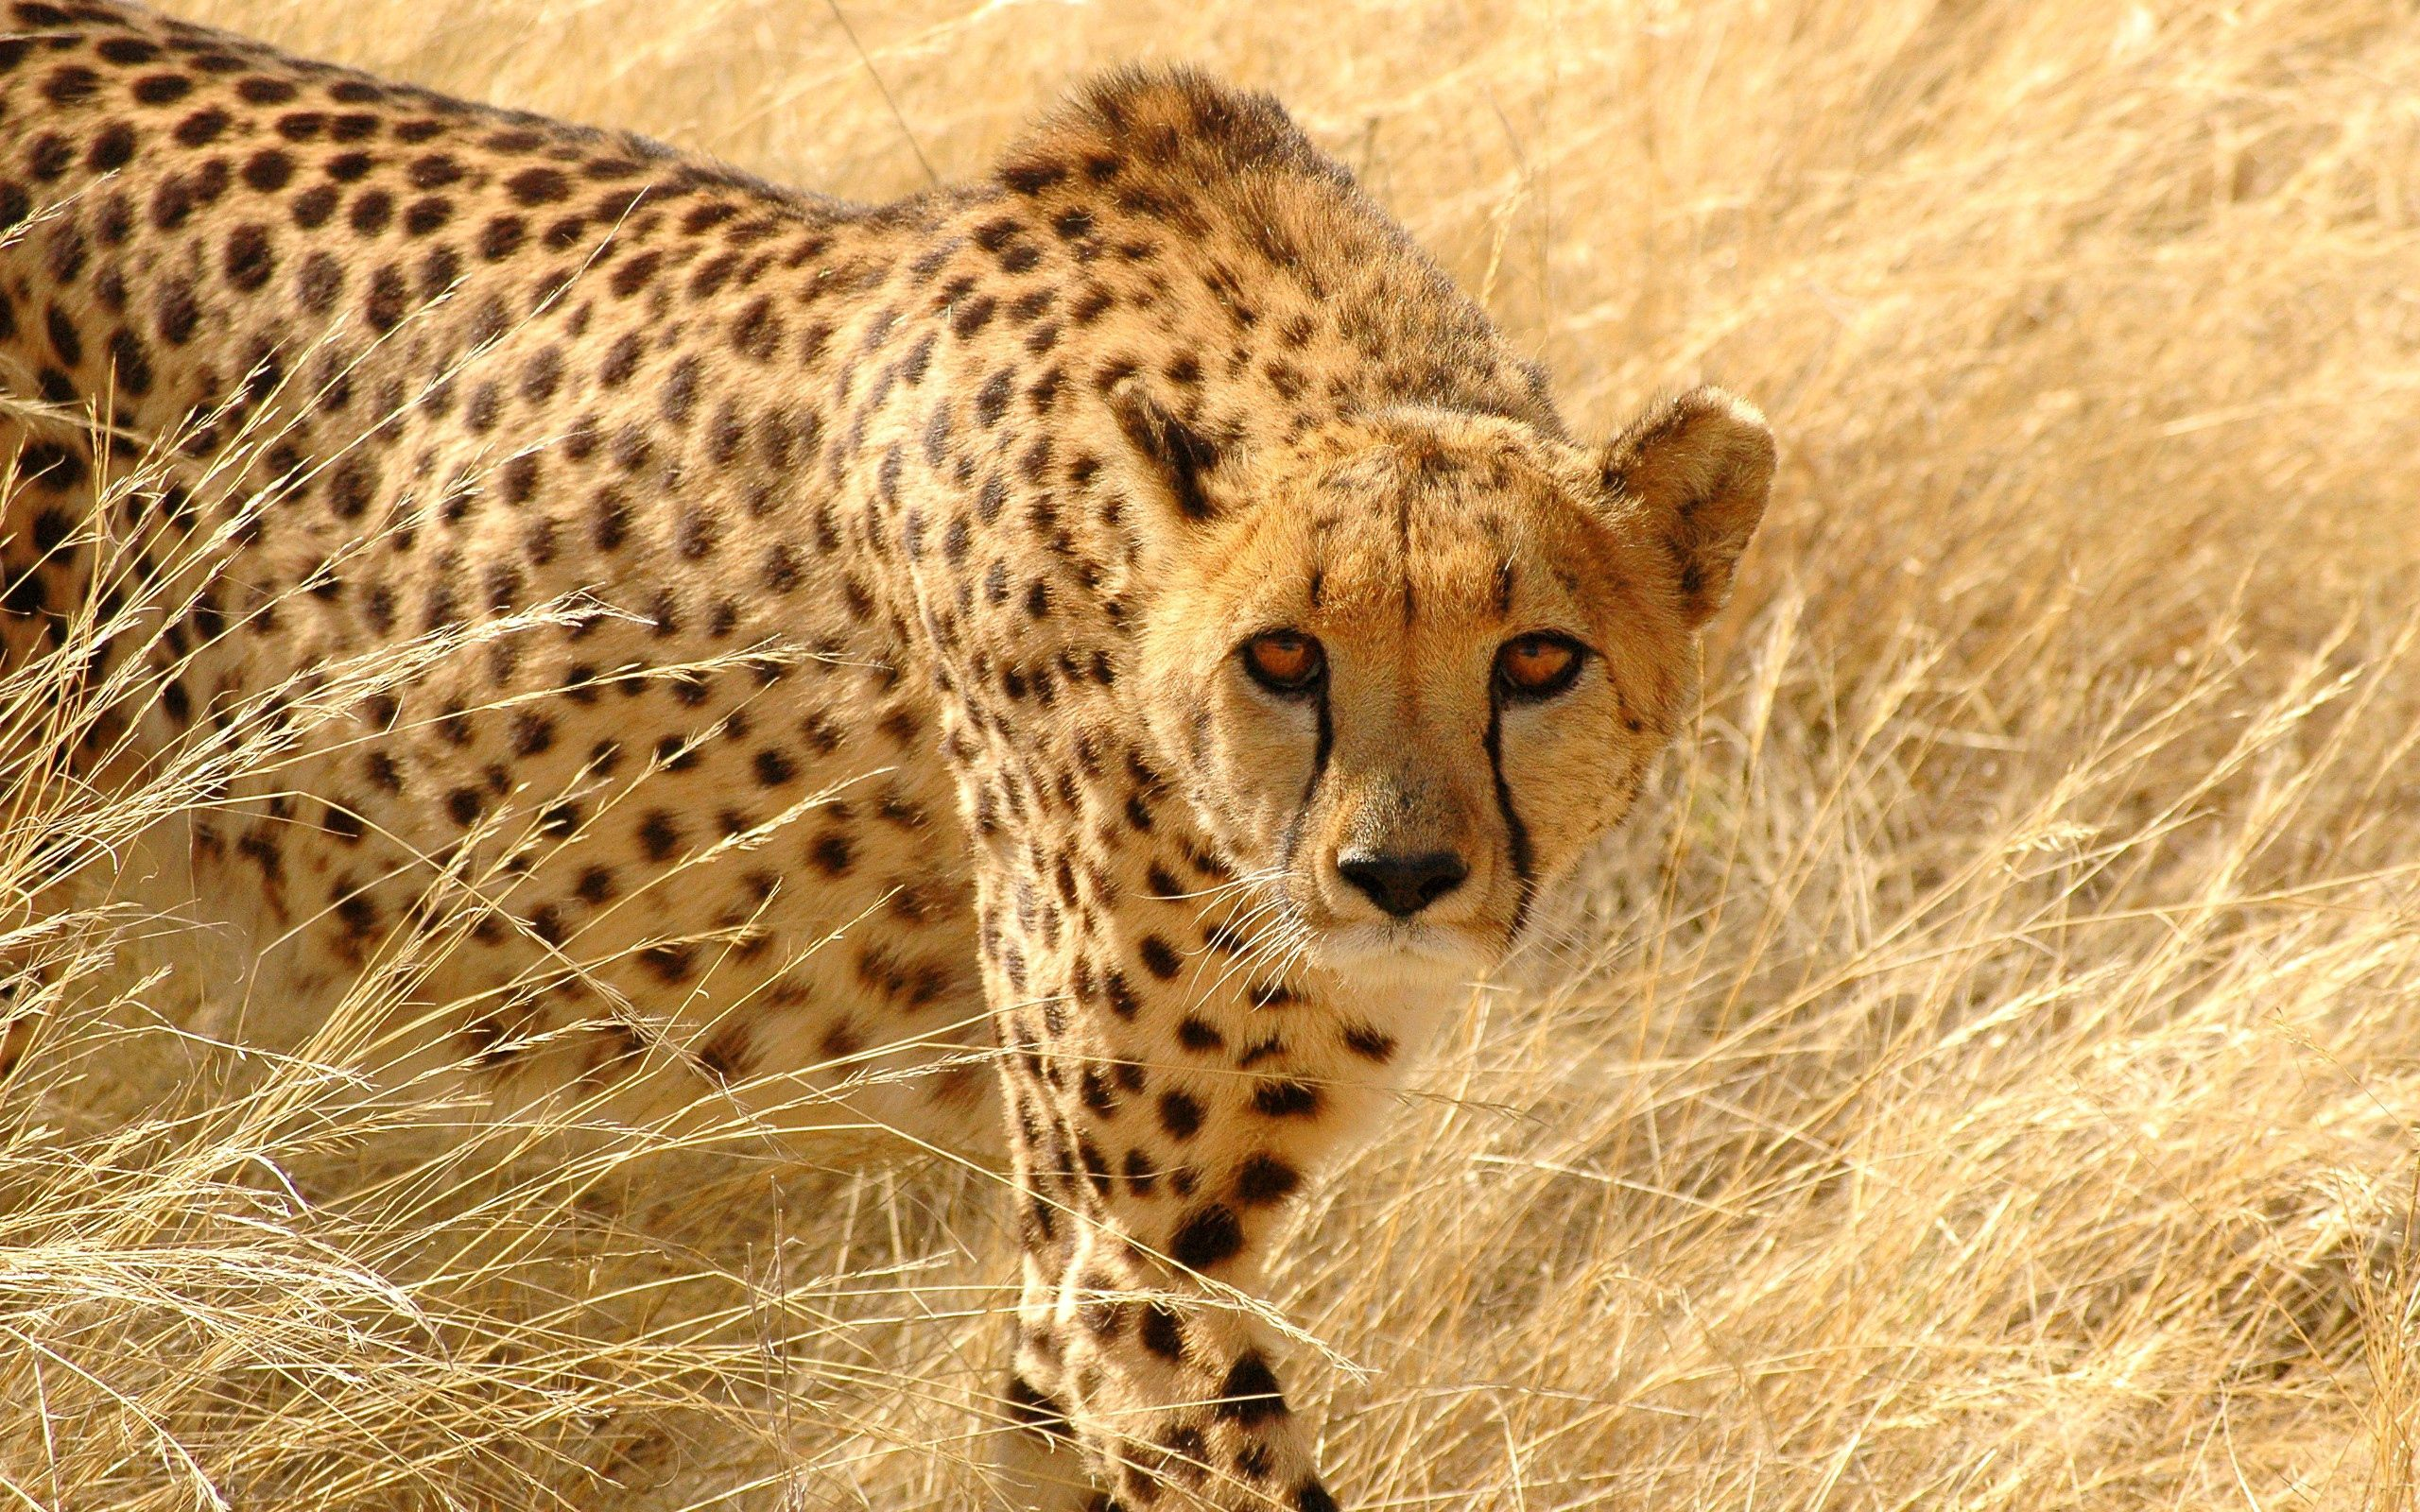 148382 download wallpaper Animals, Cheetah, Grass, Hunting, Hunt, Sight, Opinion, Attentive screensavers and pictures for free